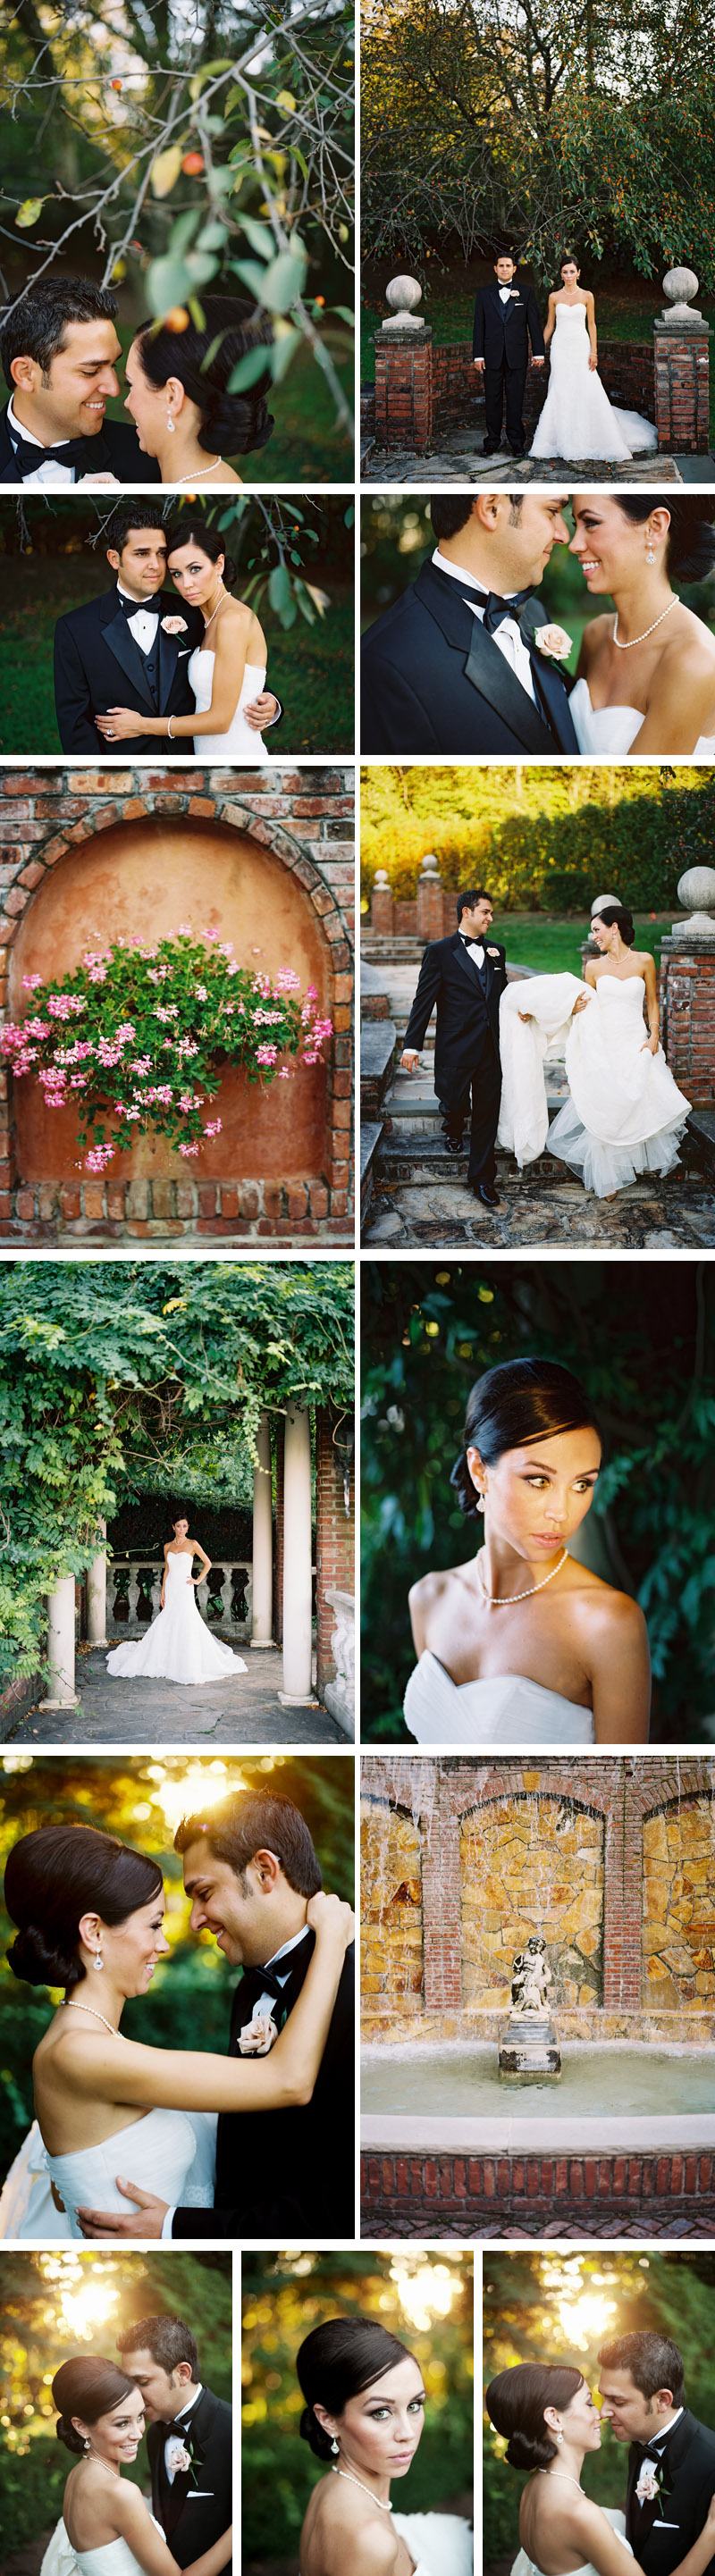 The Manor wedding in New Jersey photographed by Ash Imagery